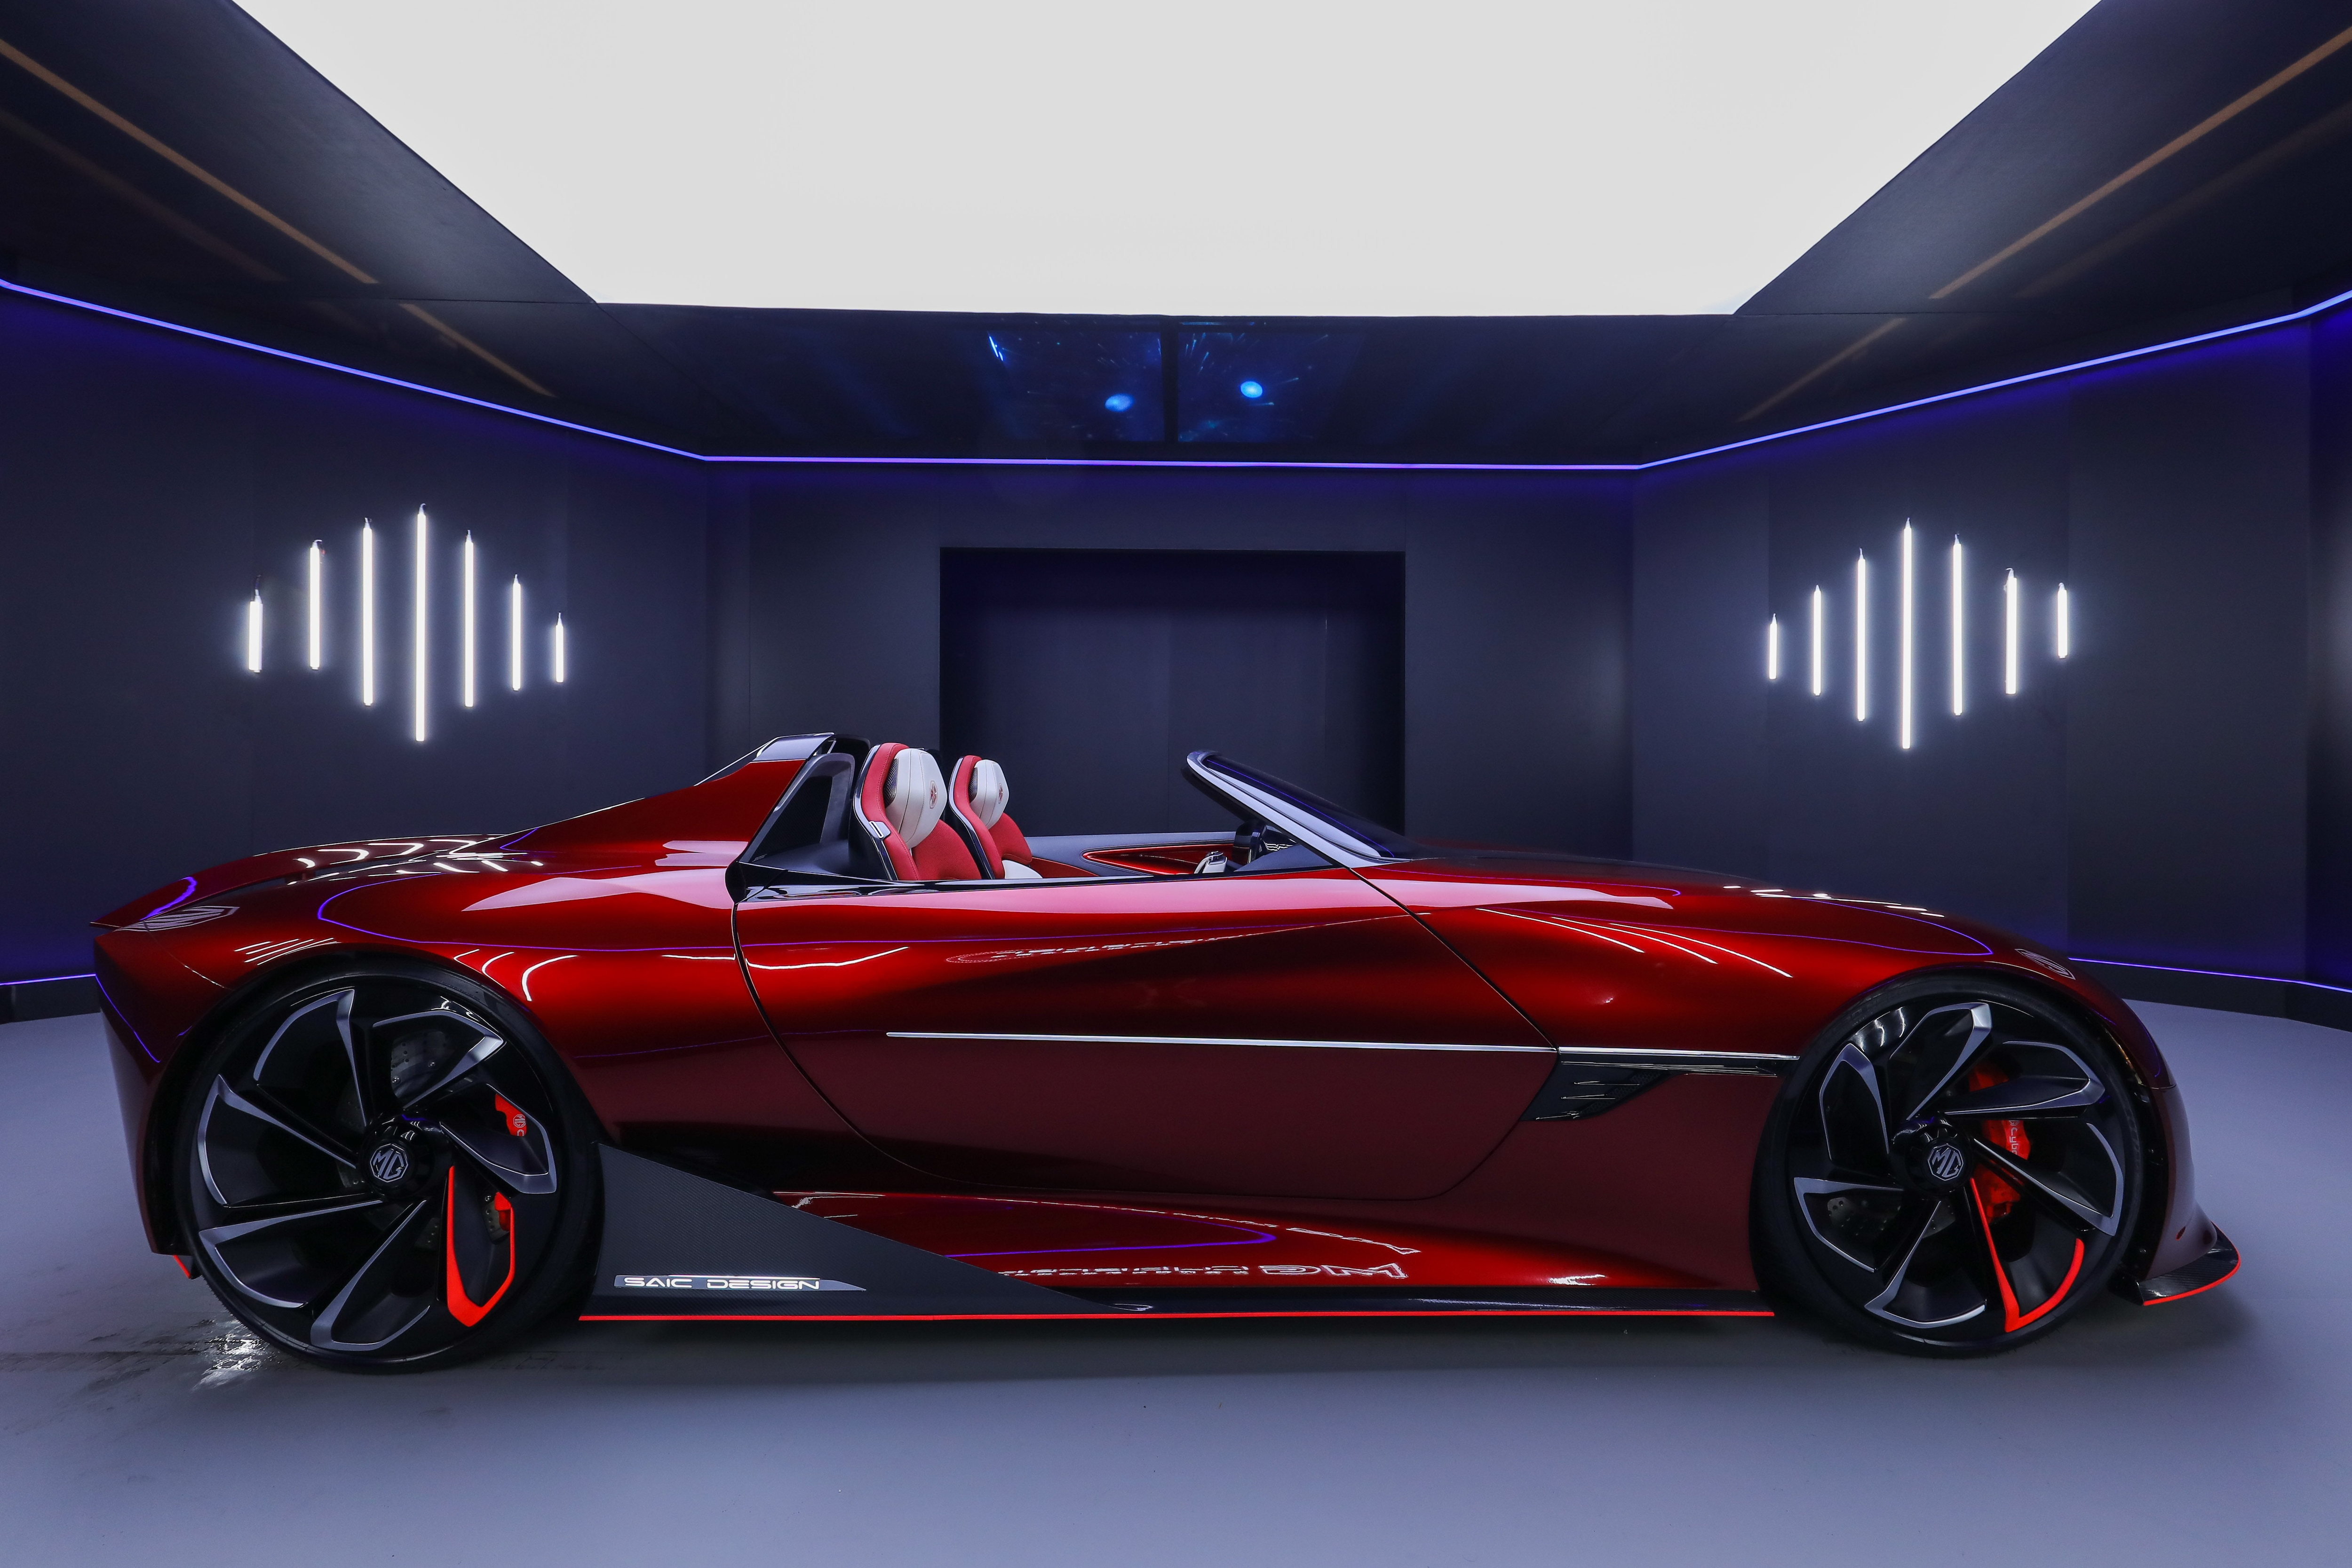 The MG Cyberster electric sportscar will make its official debut at the Shanghai Auto Show later this month.